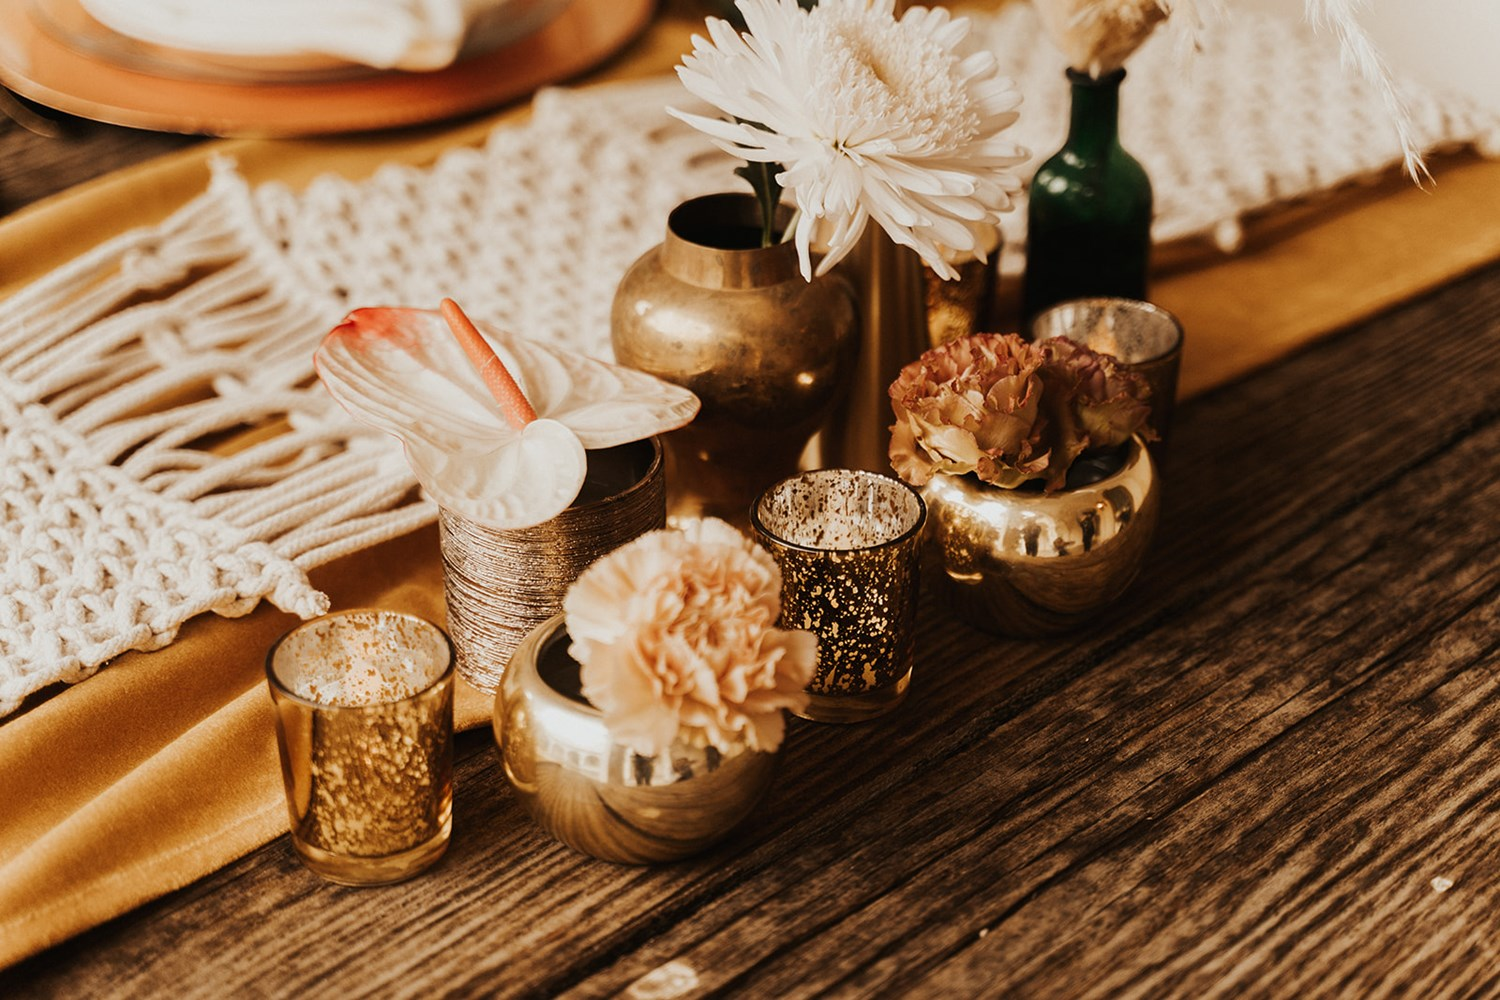 desertshootout_cait_cophoto-0008.jpg Bohemian Palm Springs Wedding Inspiration with a Modern Twist